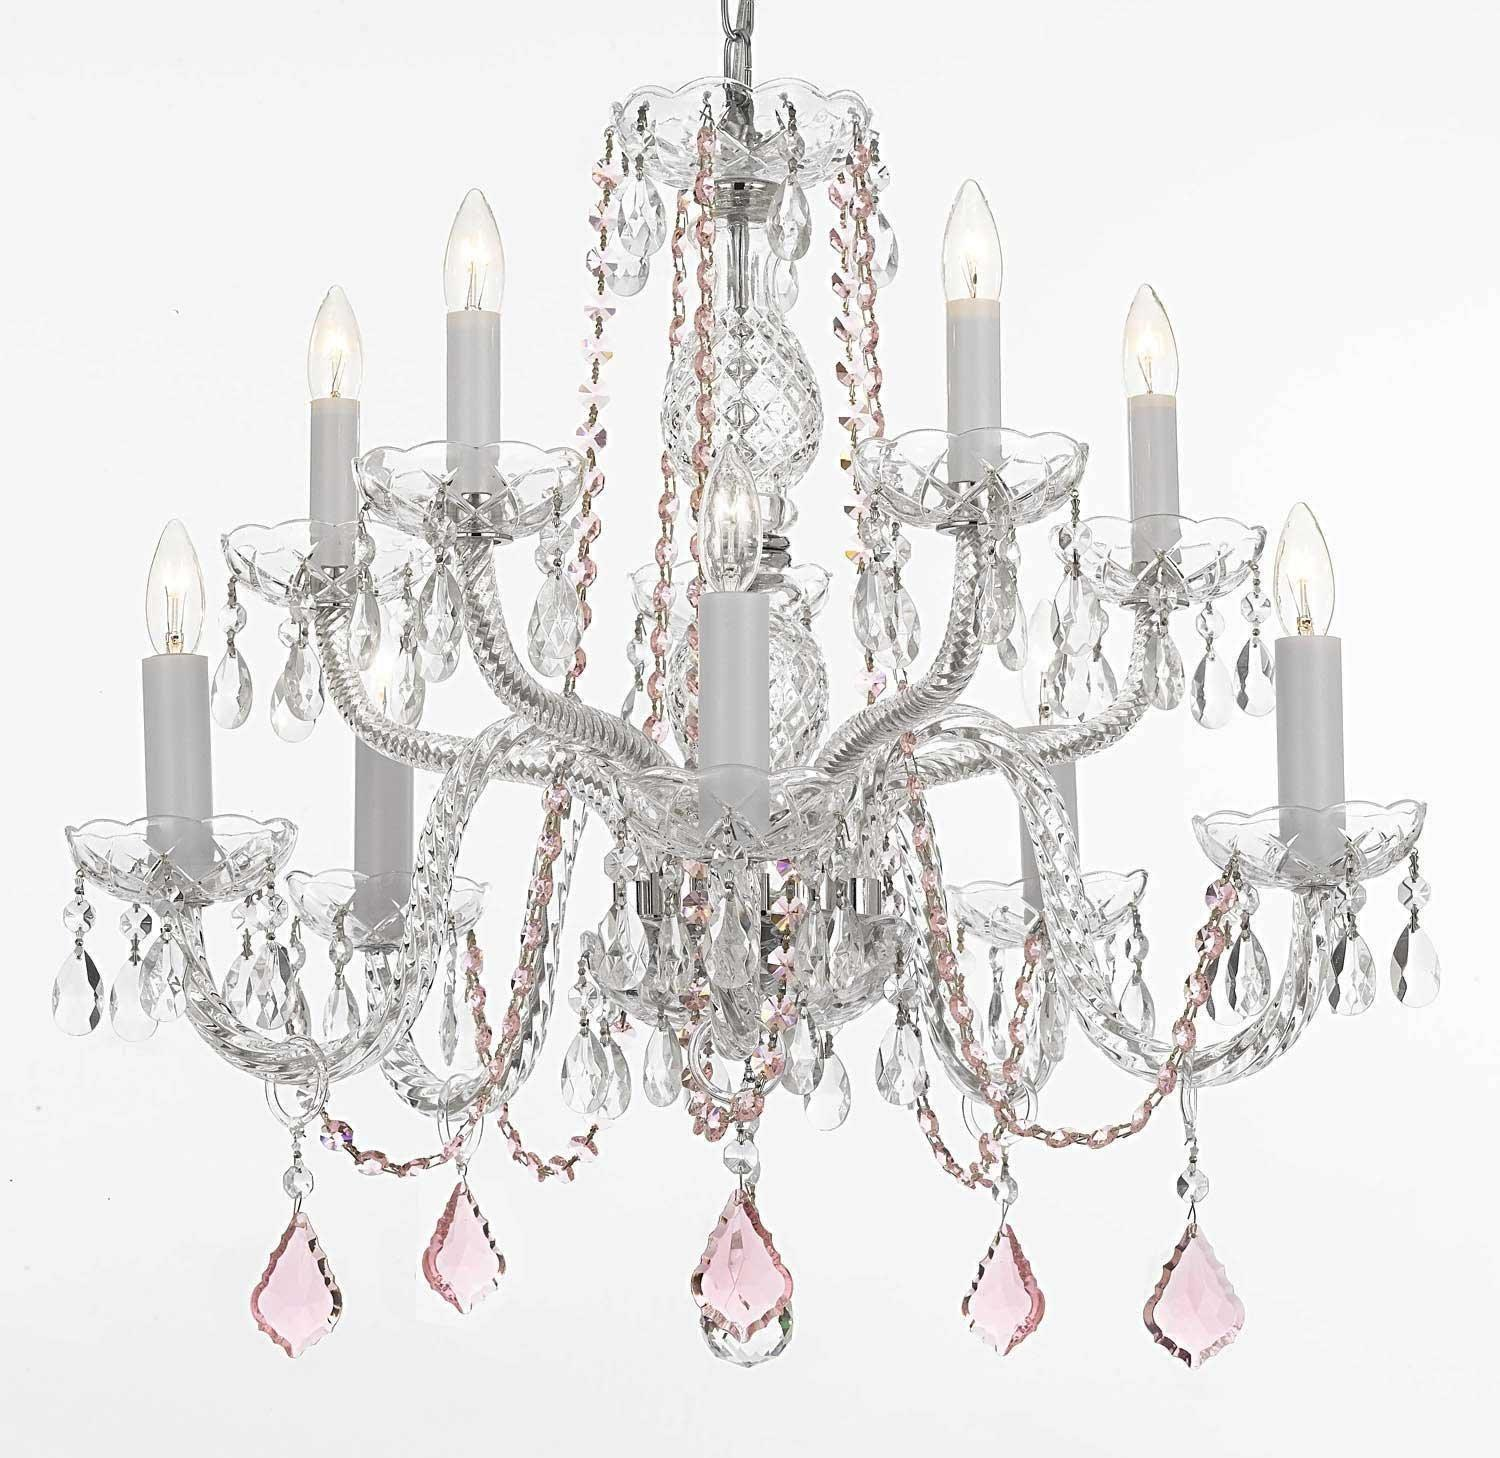 Empress Crystal Plug In Chandelier Lighting With Pink